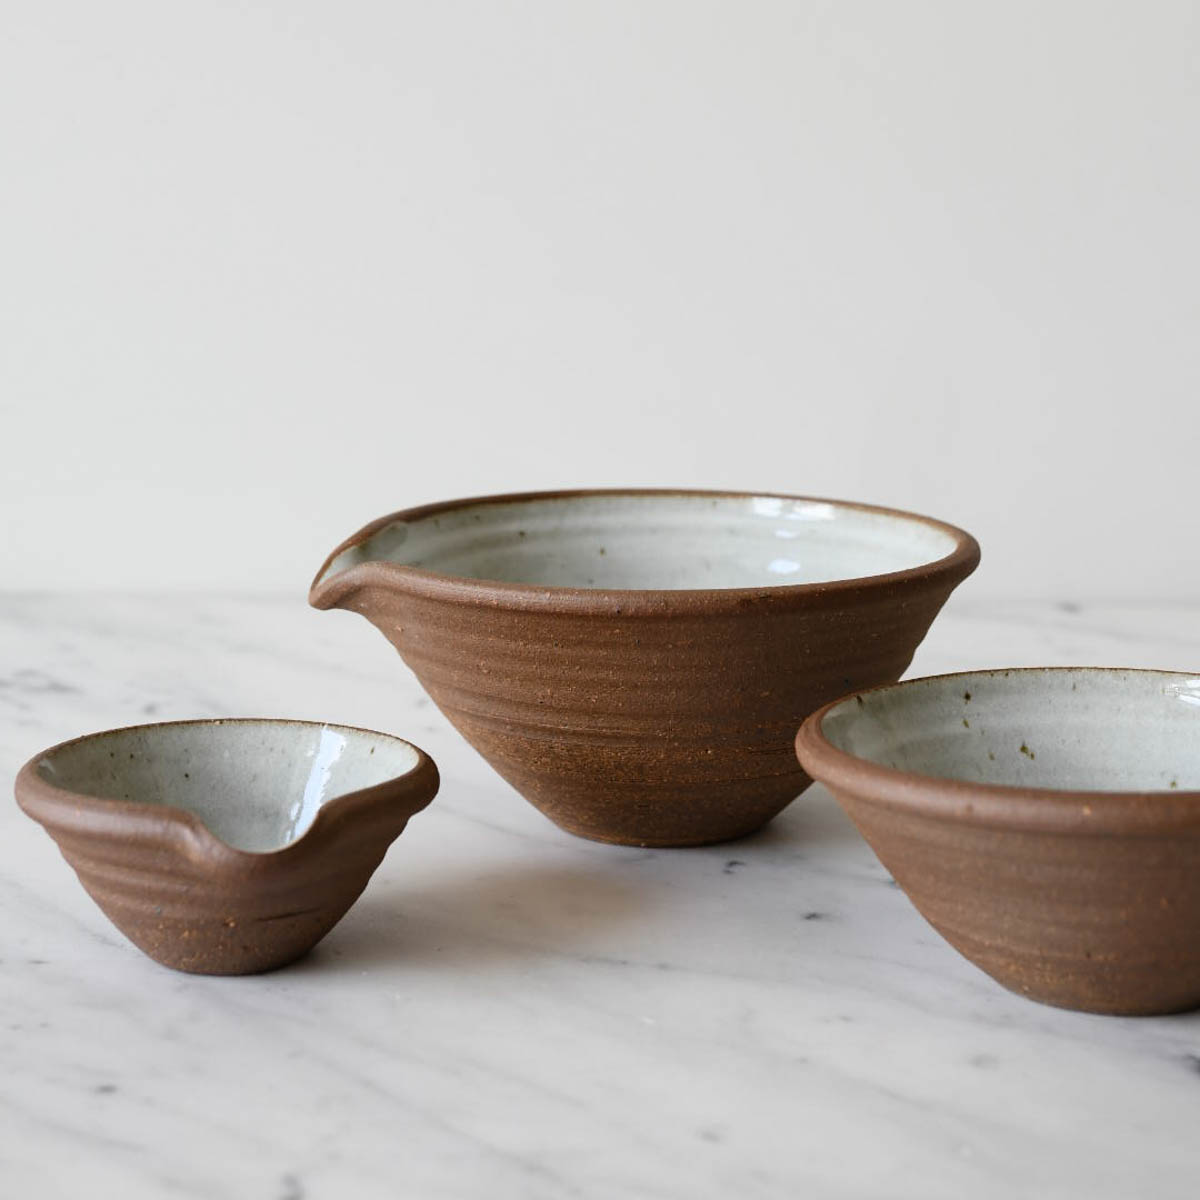 Devoid Of Culture And Indifferent To The Arts: Object of ...